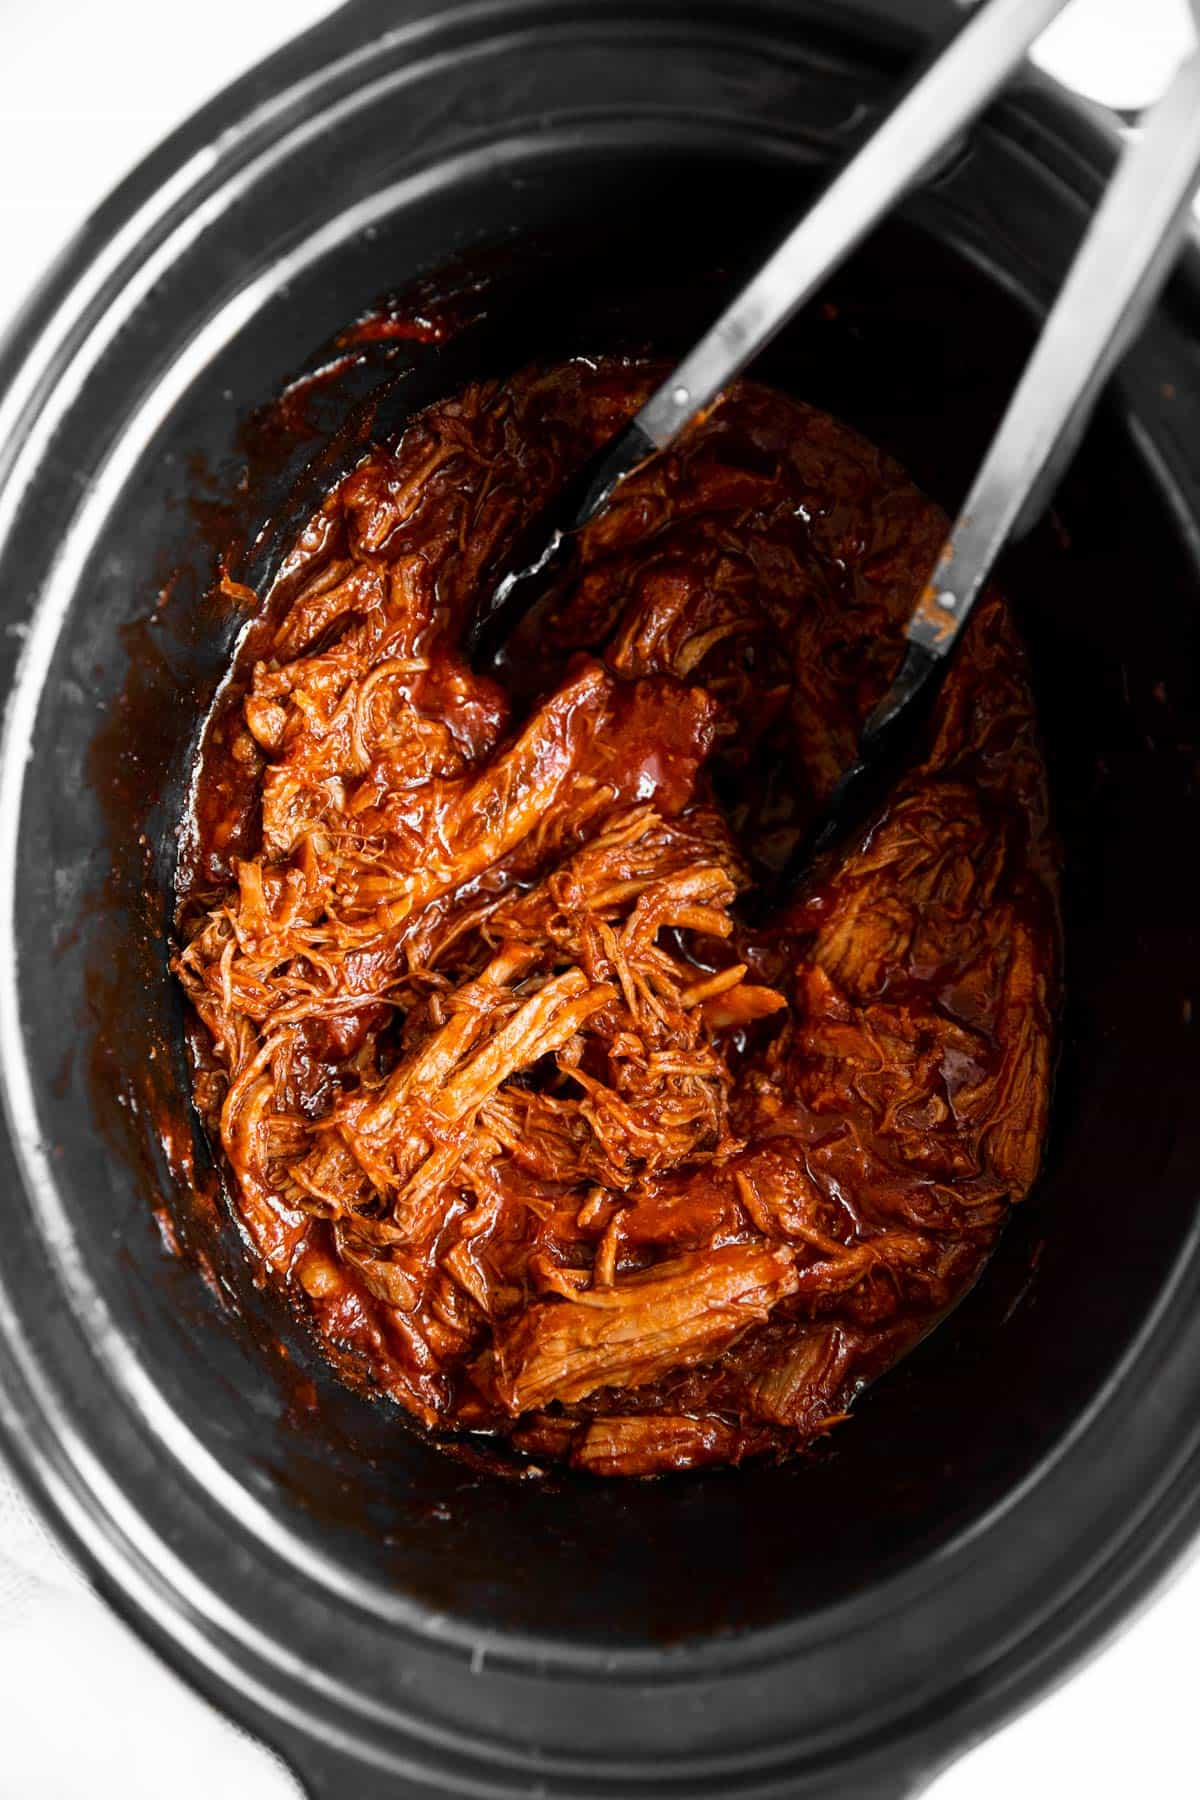 overhead view of crockpot with BBQ pulled pork